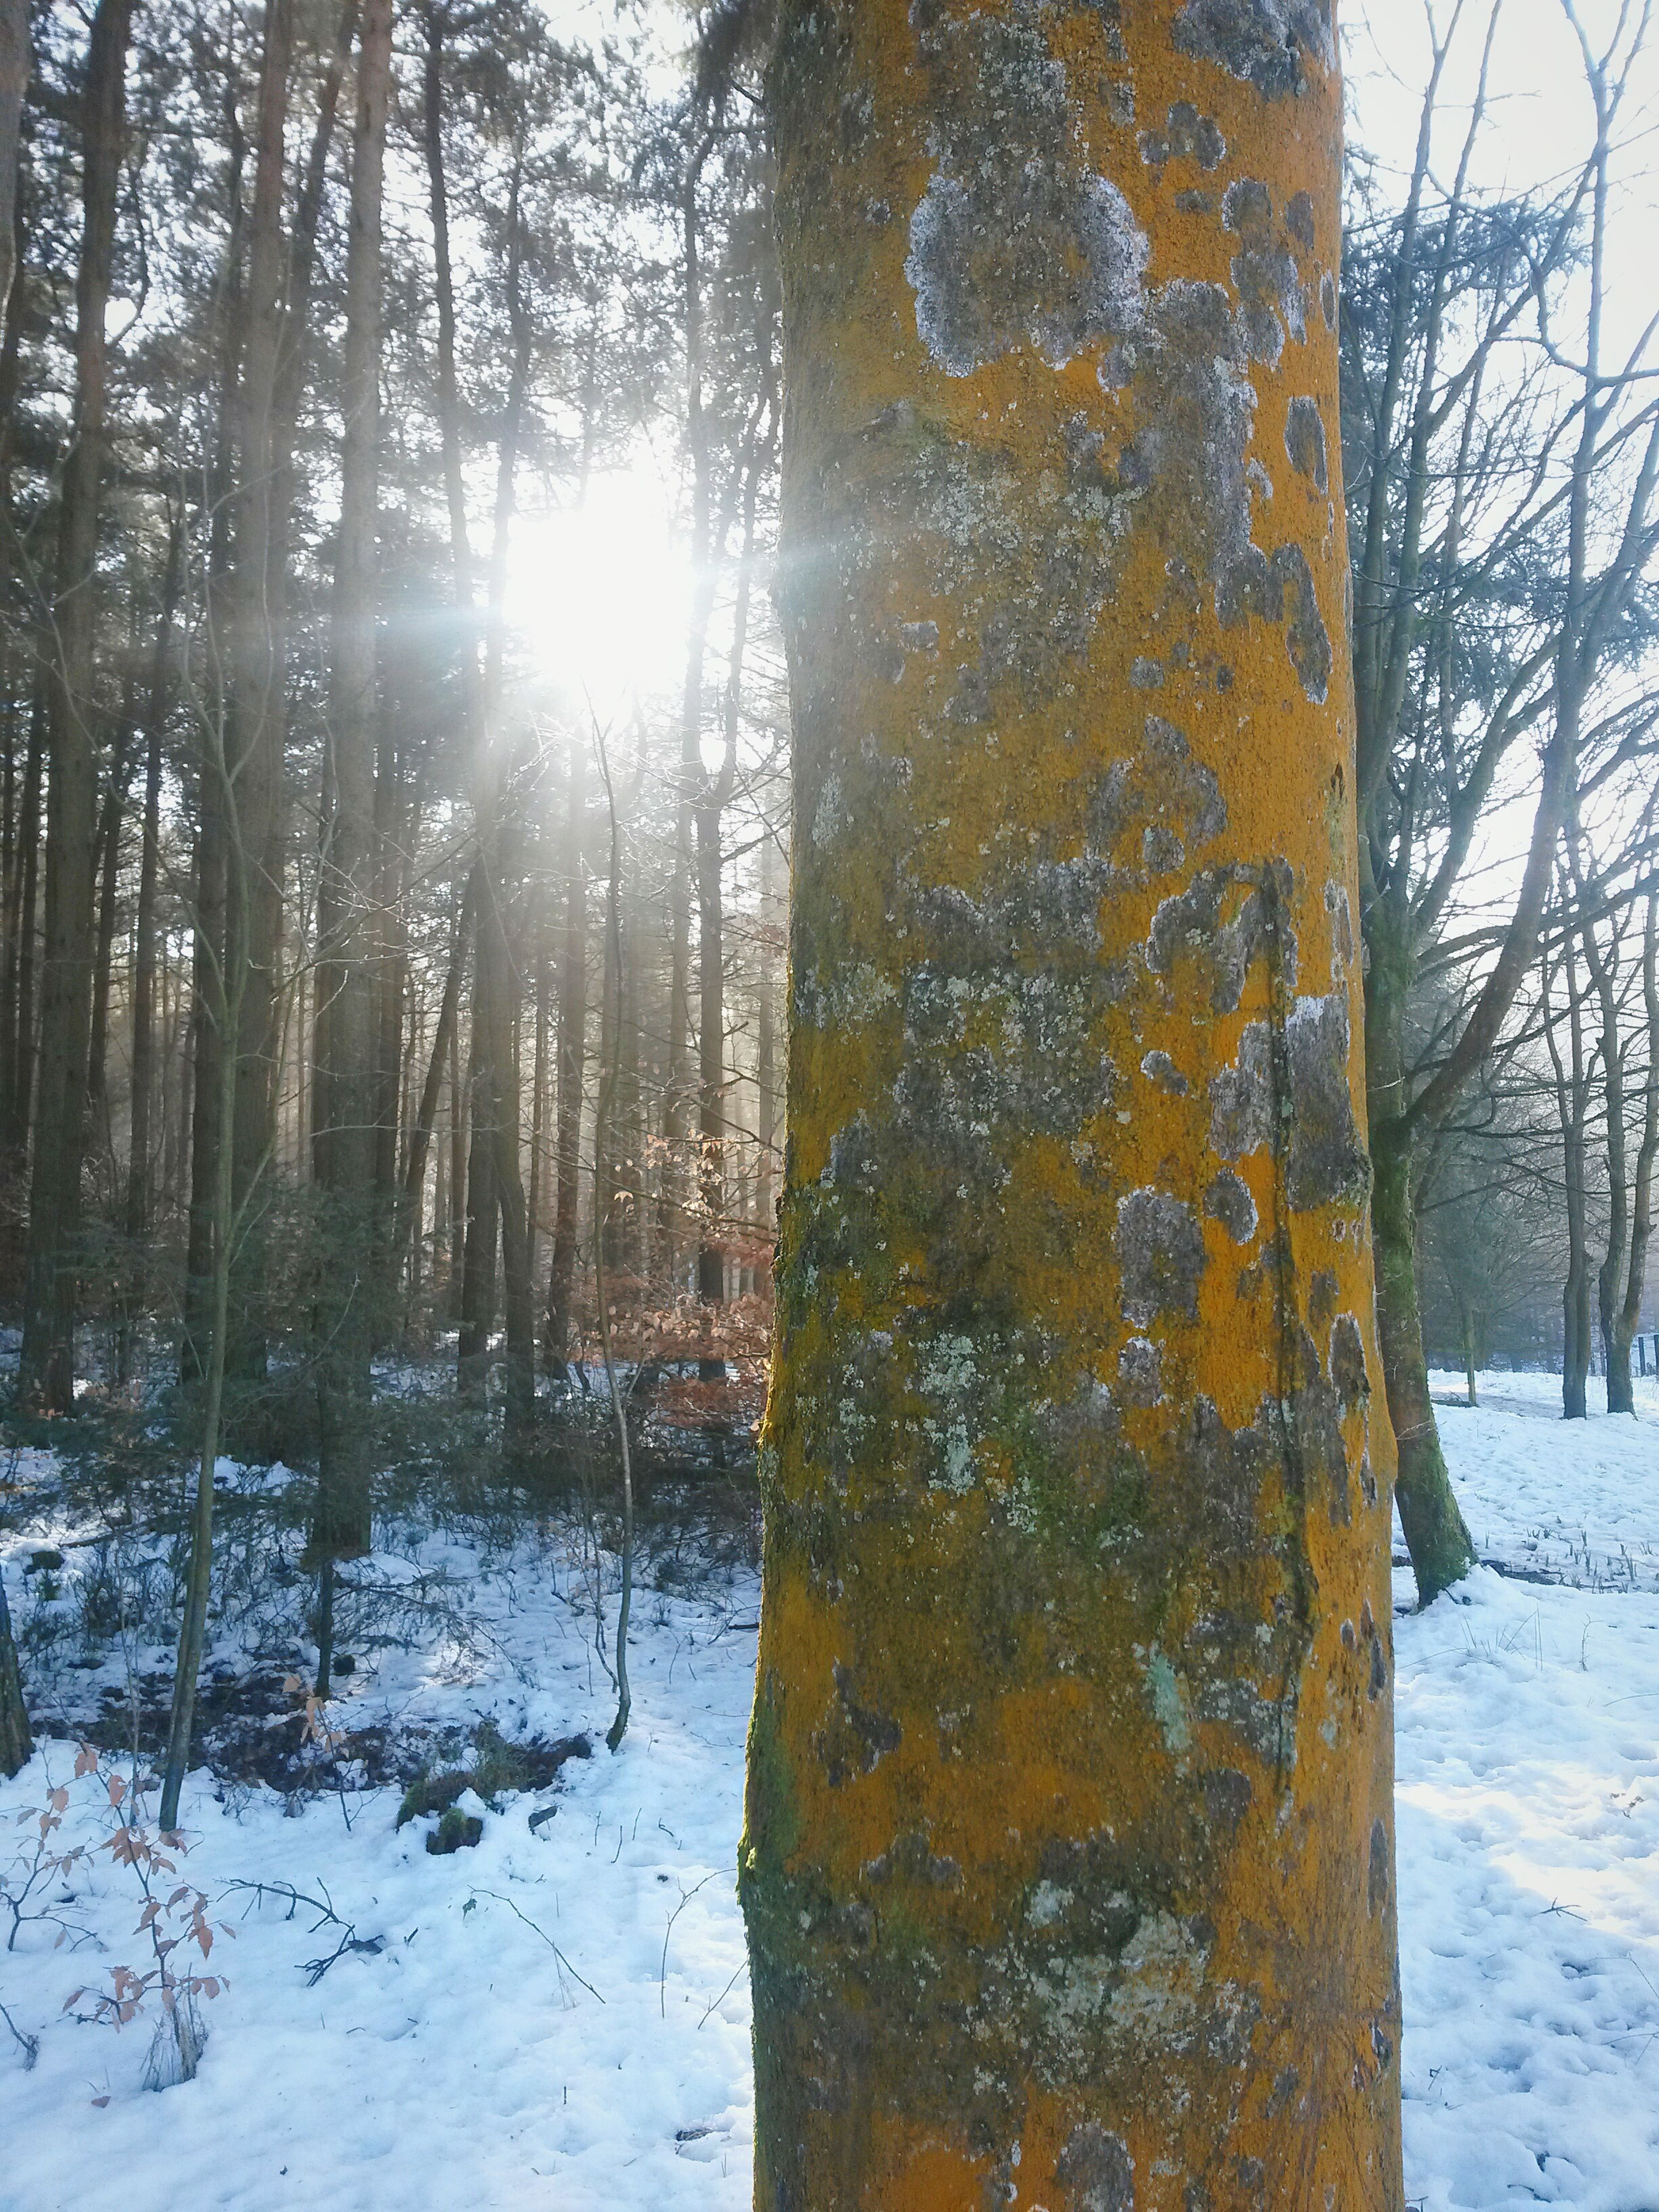 snow, winter, cold temperature, season, tree, sun, tree trunk, frozen, tranquility, sunlight, nature, weather, tranquil scene, covering, sky, beauty in nature, scenics, field, landscape, sunbeam